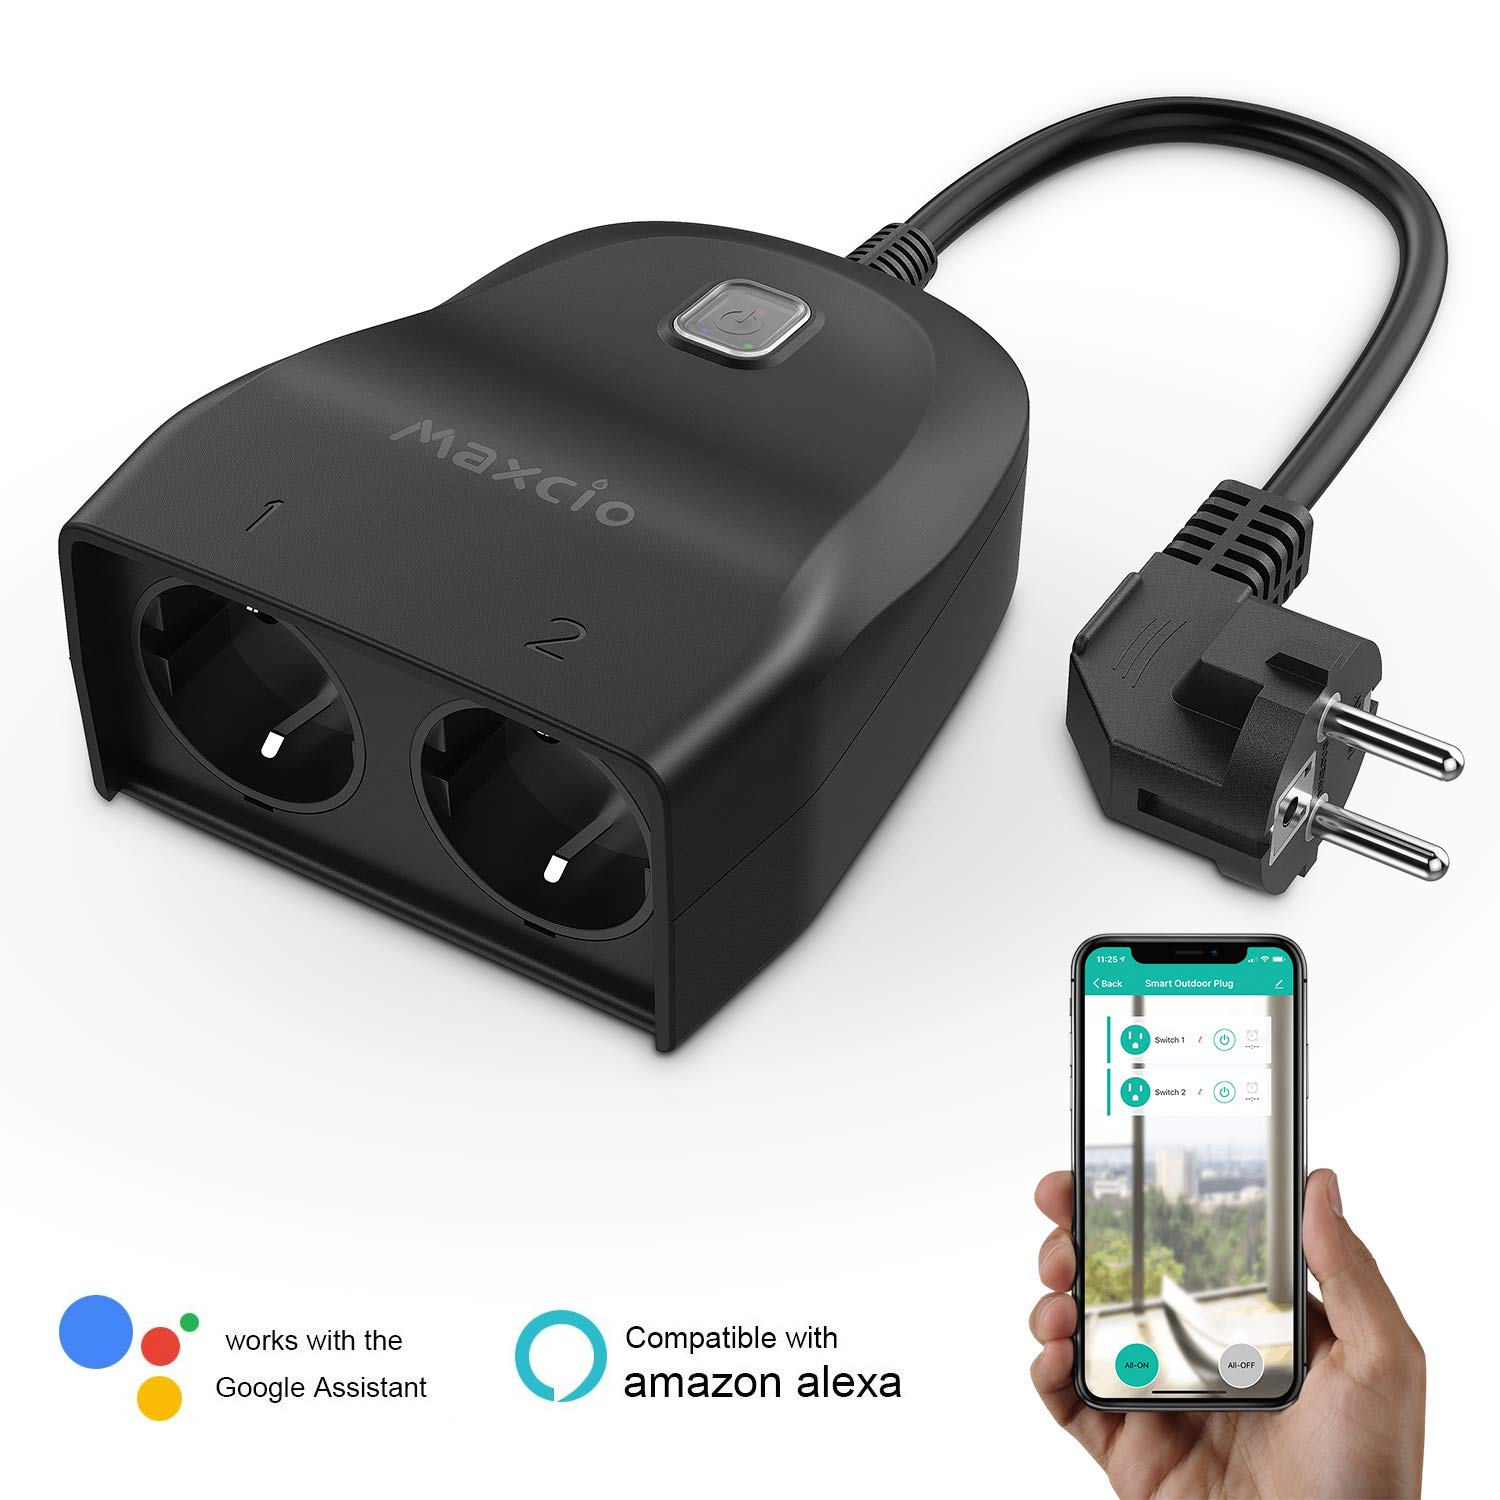 Maxcio Outdoor Smart Plug - EU Version